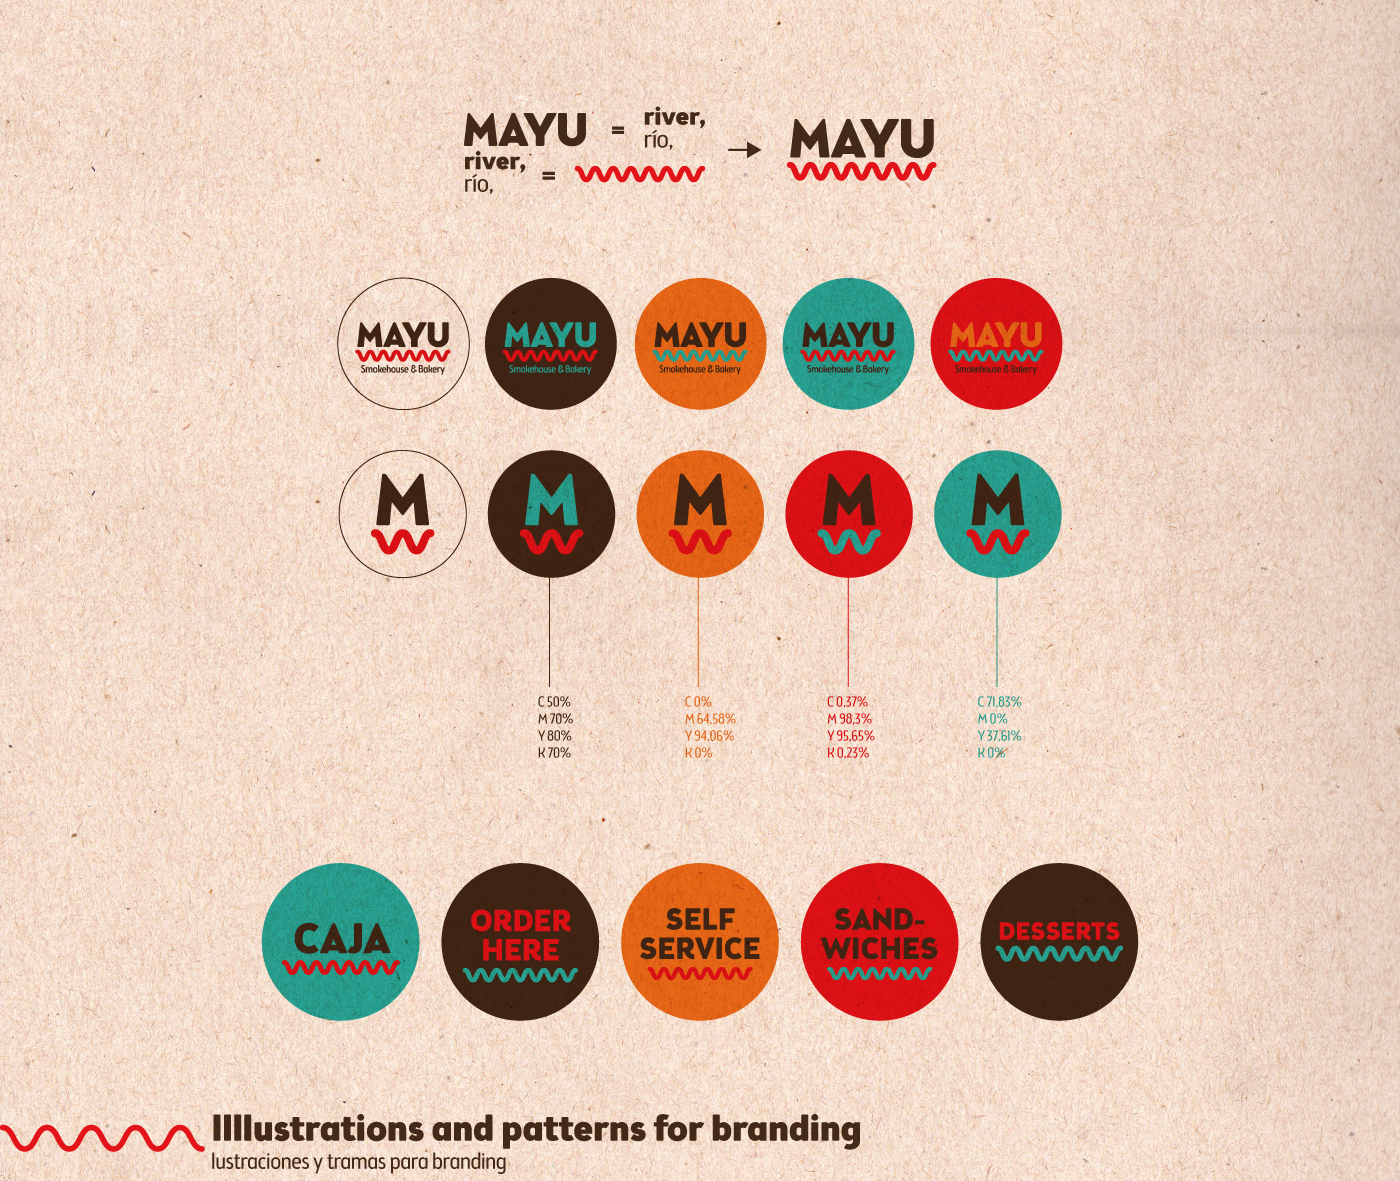 Mayu is a smokehouse situated in the city of Cuenca, Ecuador